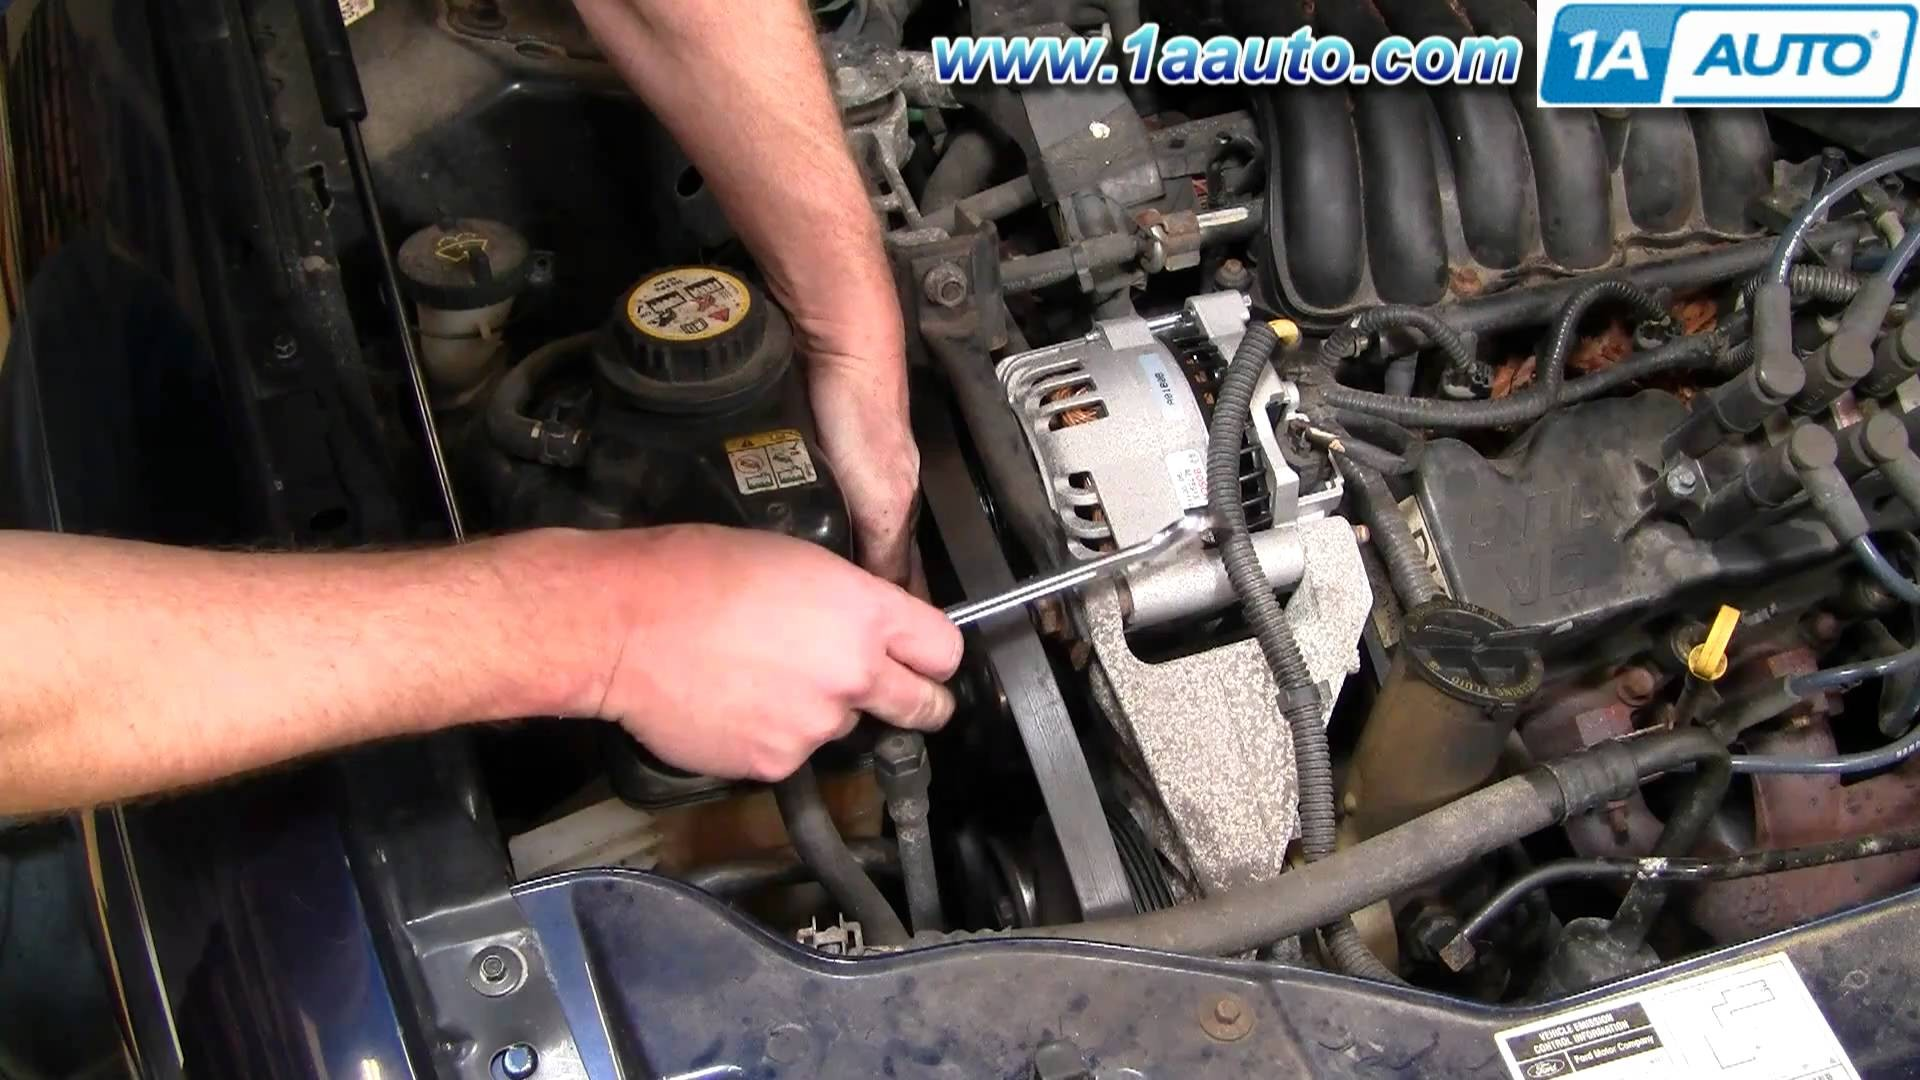 1995 ford Taurus Engine Diagram How to Install Replace Serpentine Belt Idler Pulley ford Taurus 3 0l